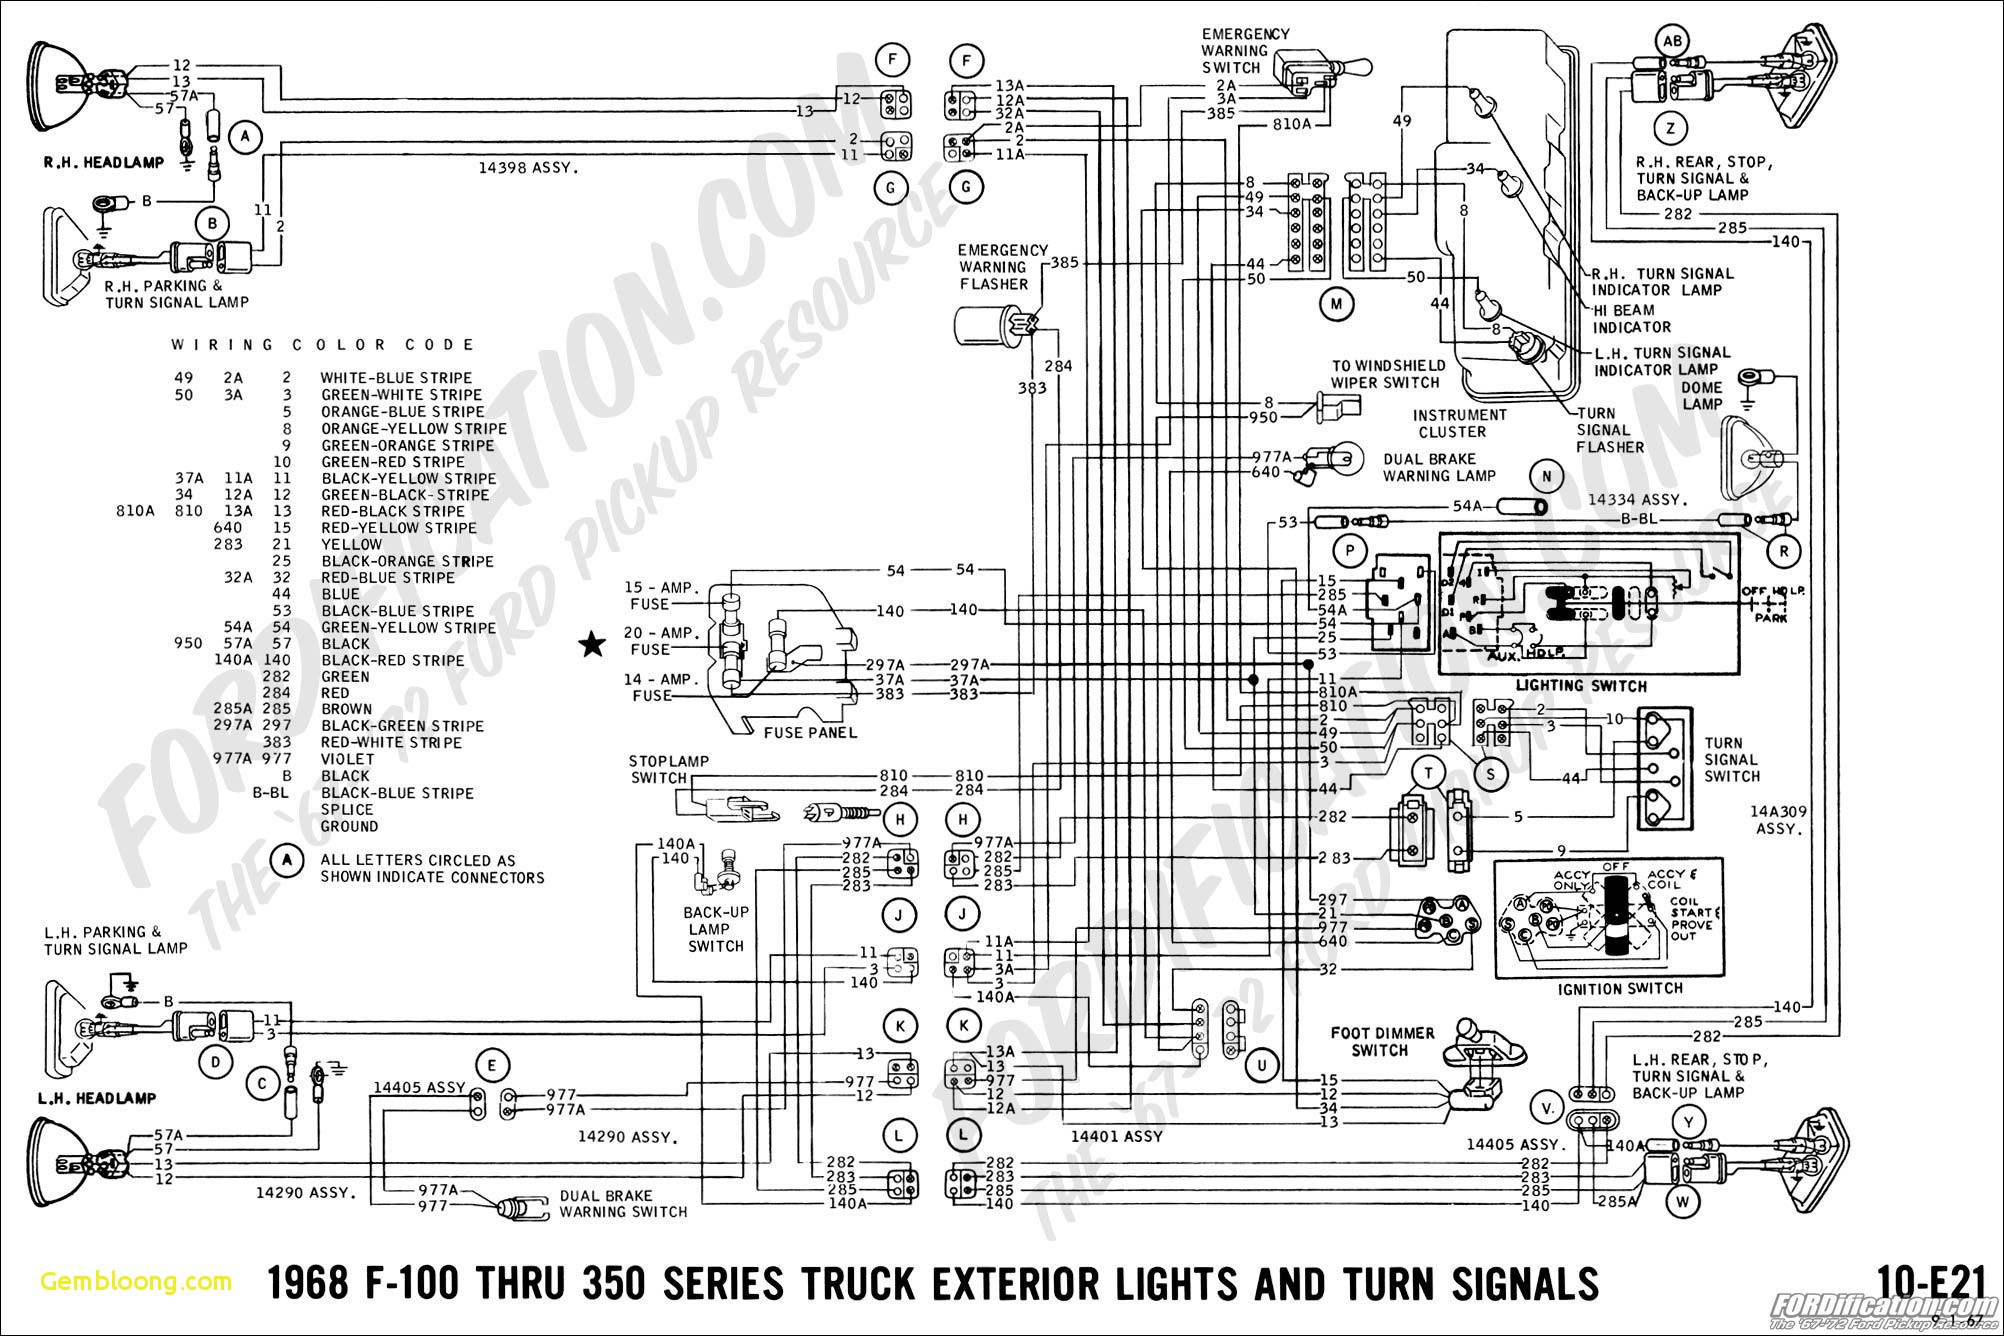 truck loading diagram download ford trucks wiring diagrams ford truck wiring diagrams of truck loading diagram?quality\\\\\\\\\\\\\\\\\\\\\\\\\\\\\\\=80\\\\\\\\\\\\\\\\\\\\\\\\\\\\\\\&strip\\\\\\\\\\\\\\\\\\\\\\\\\\\\\\\=all 1960 ford truck wiring harness wiring diagram